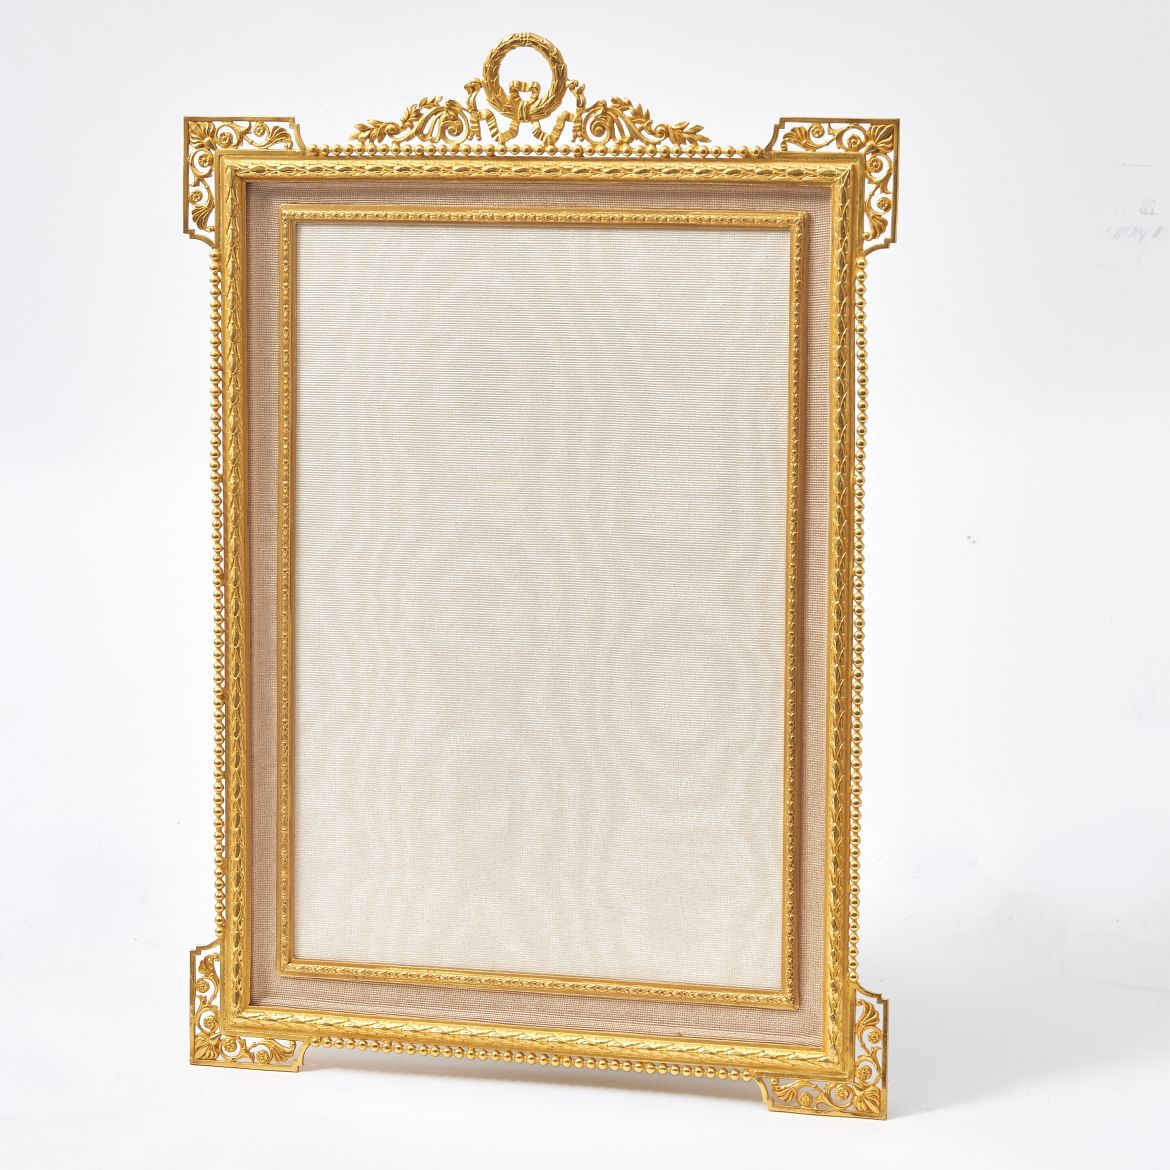 French Ormolu Frame with Laurel Crest